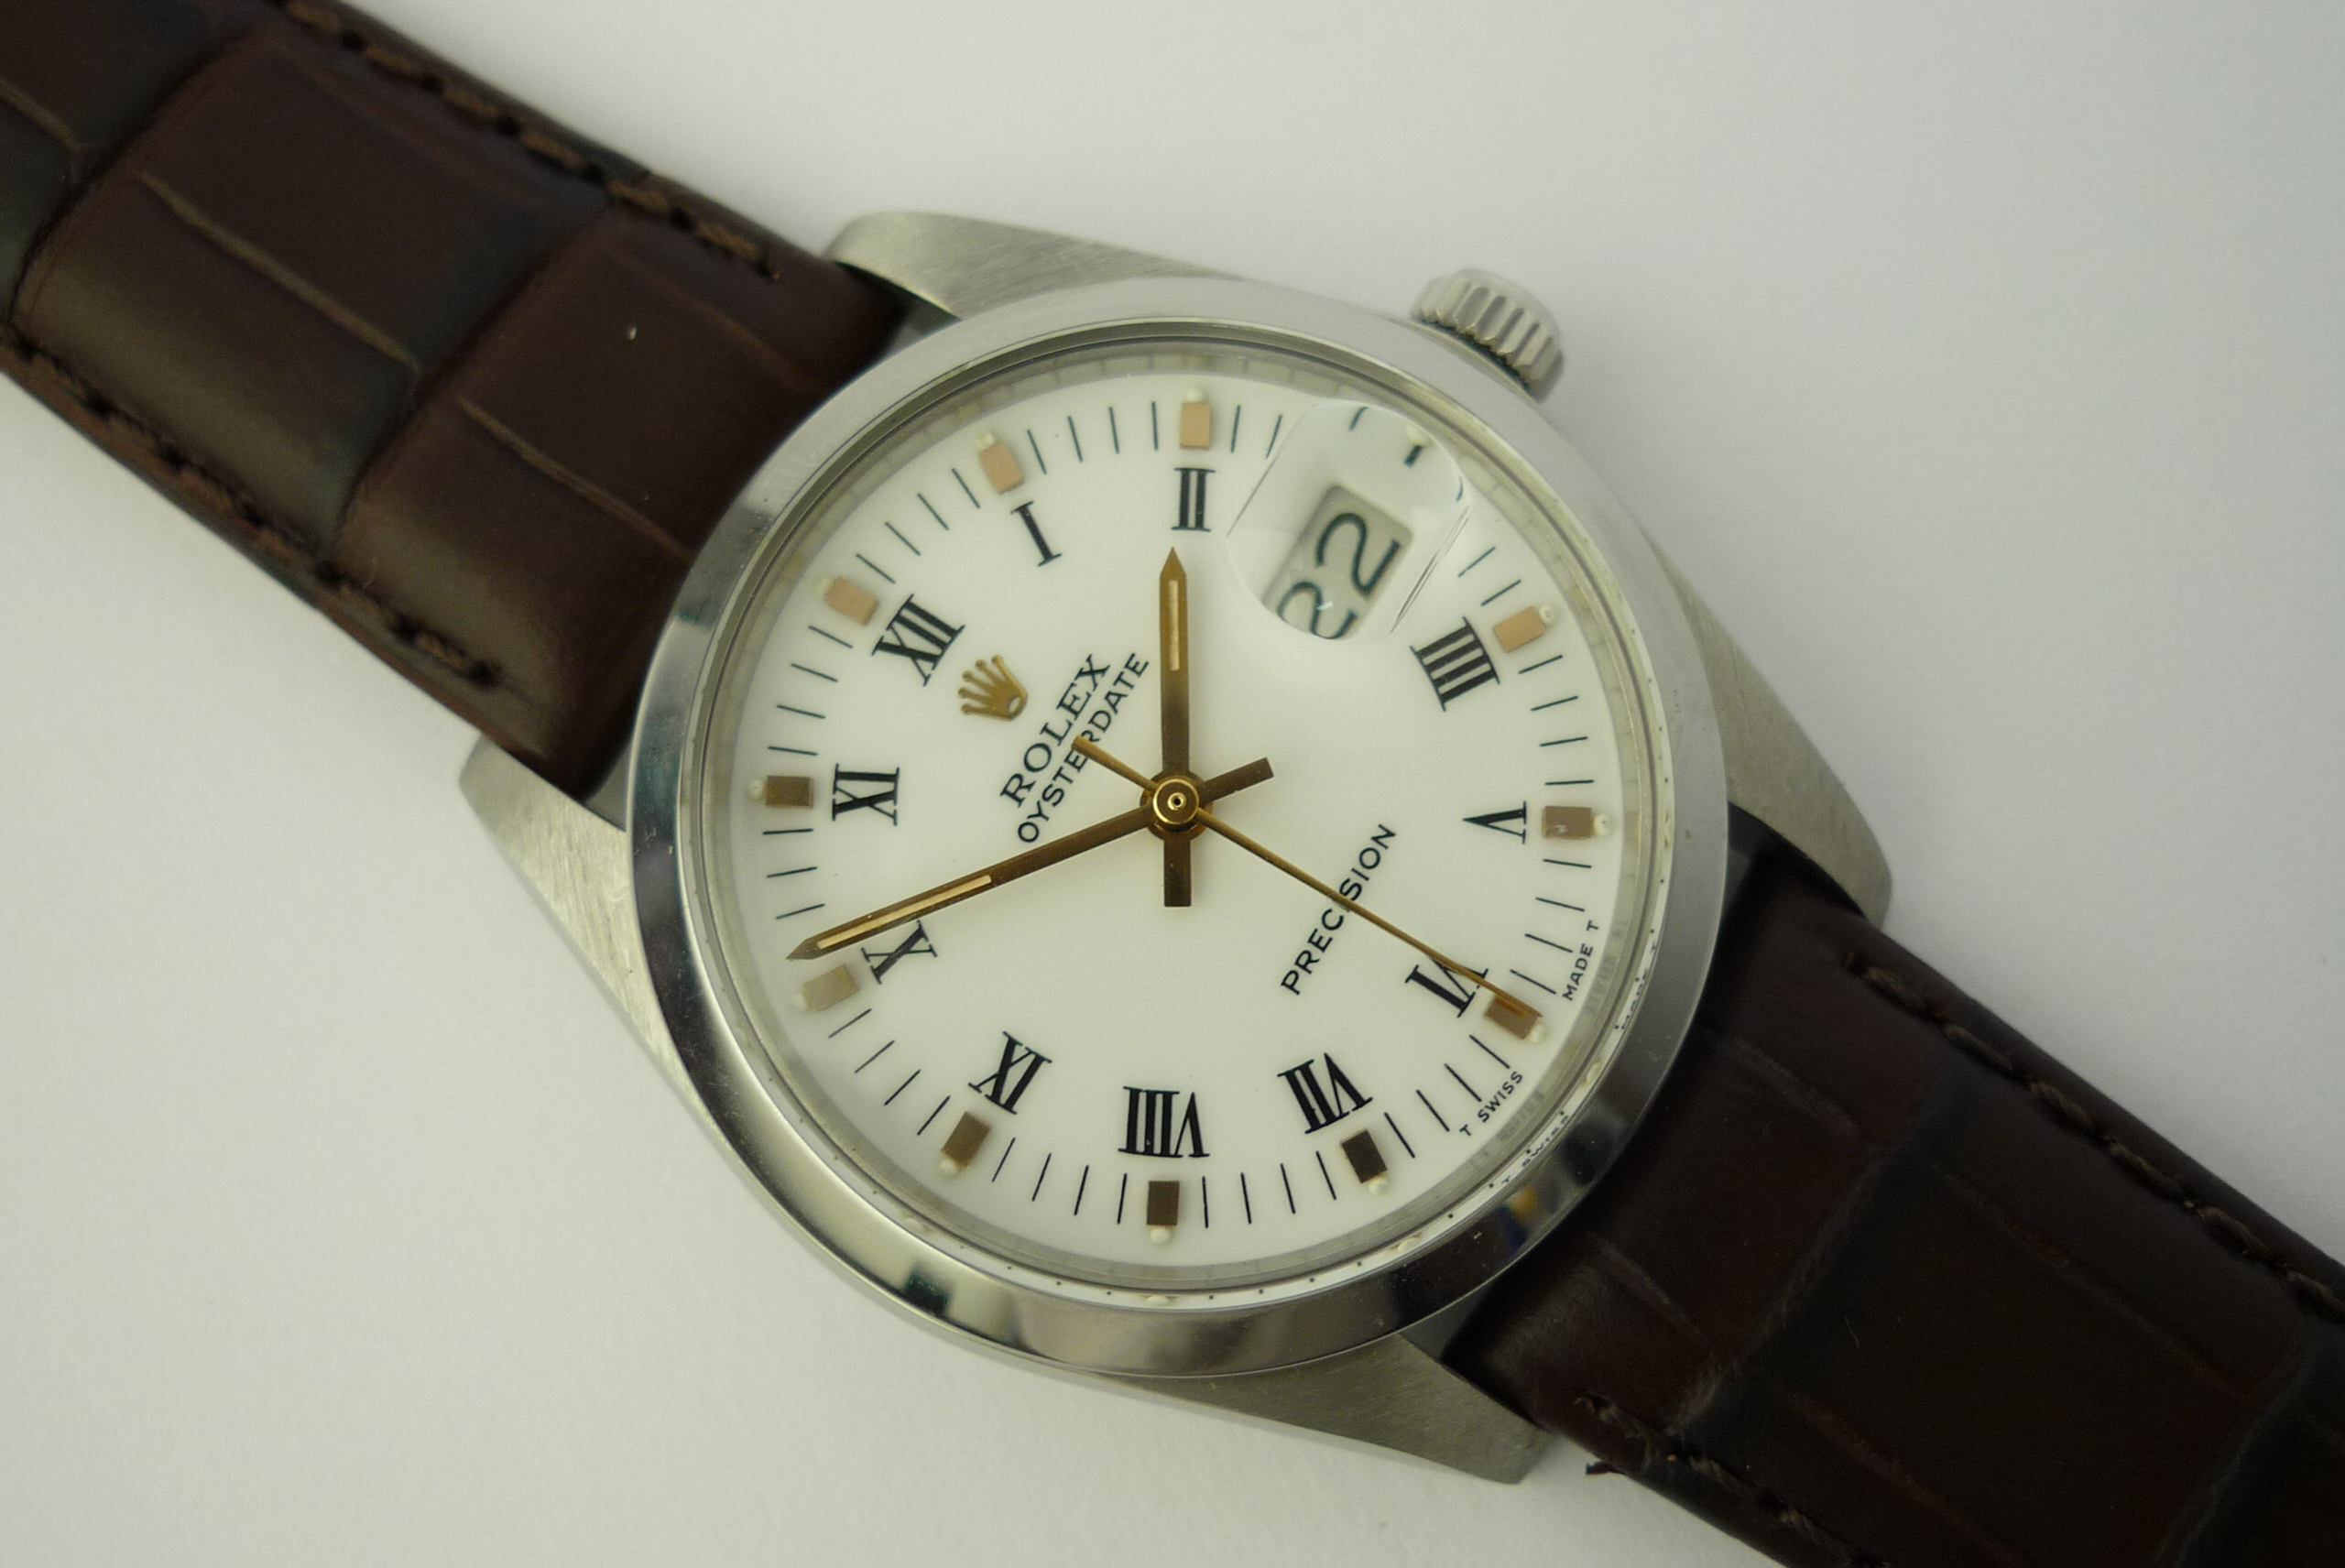 Rolex OysterDate precision watch ref 6694 (1983).